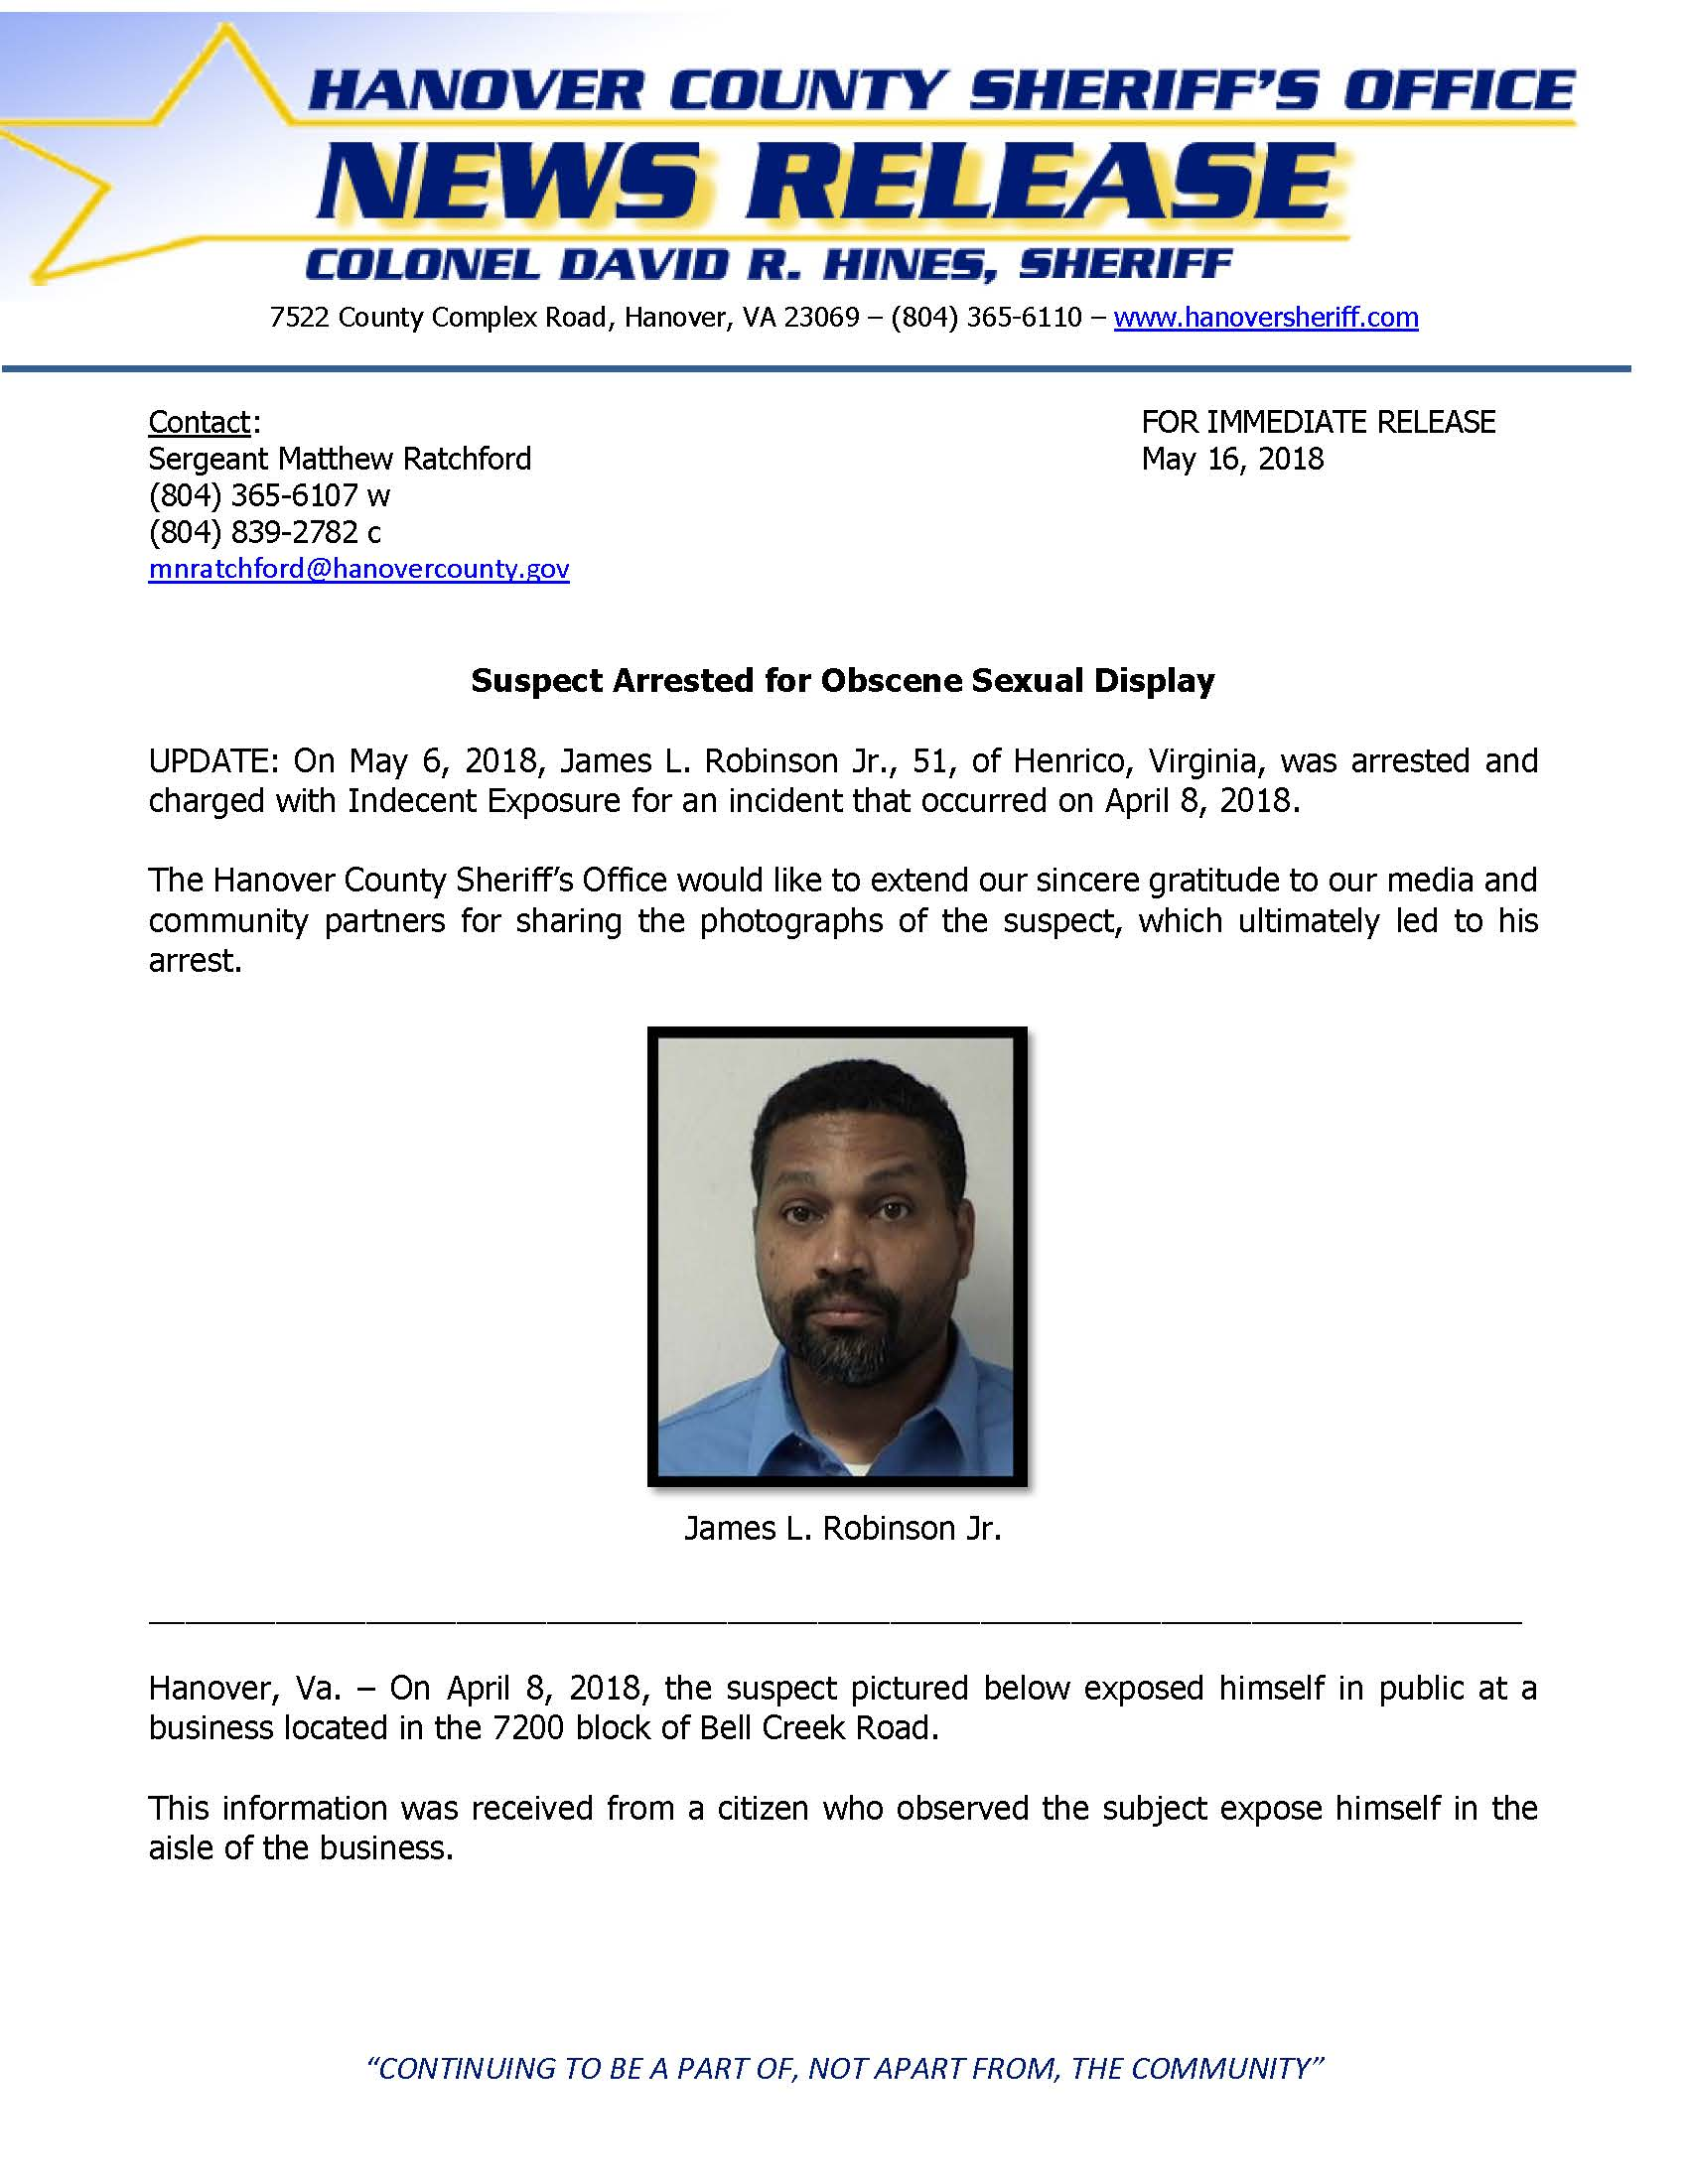 HCSO - Suspect ARRESTED for Obscene Sexual display- May 16, 2018_Page_1